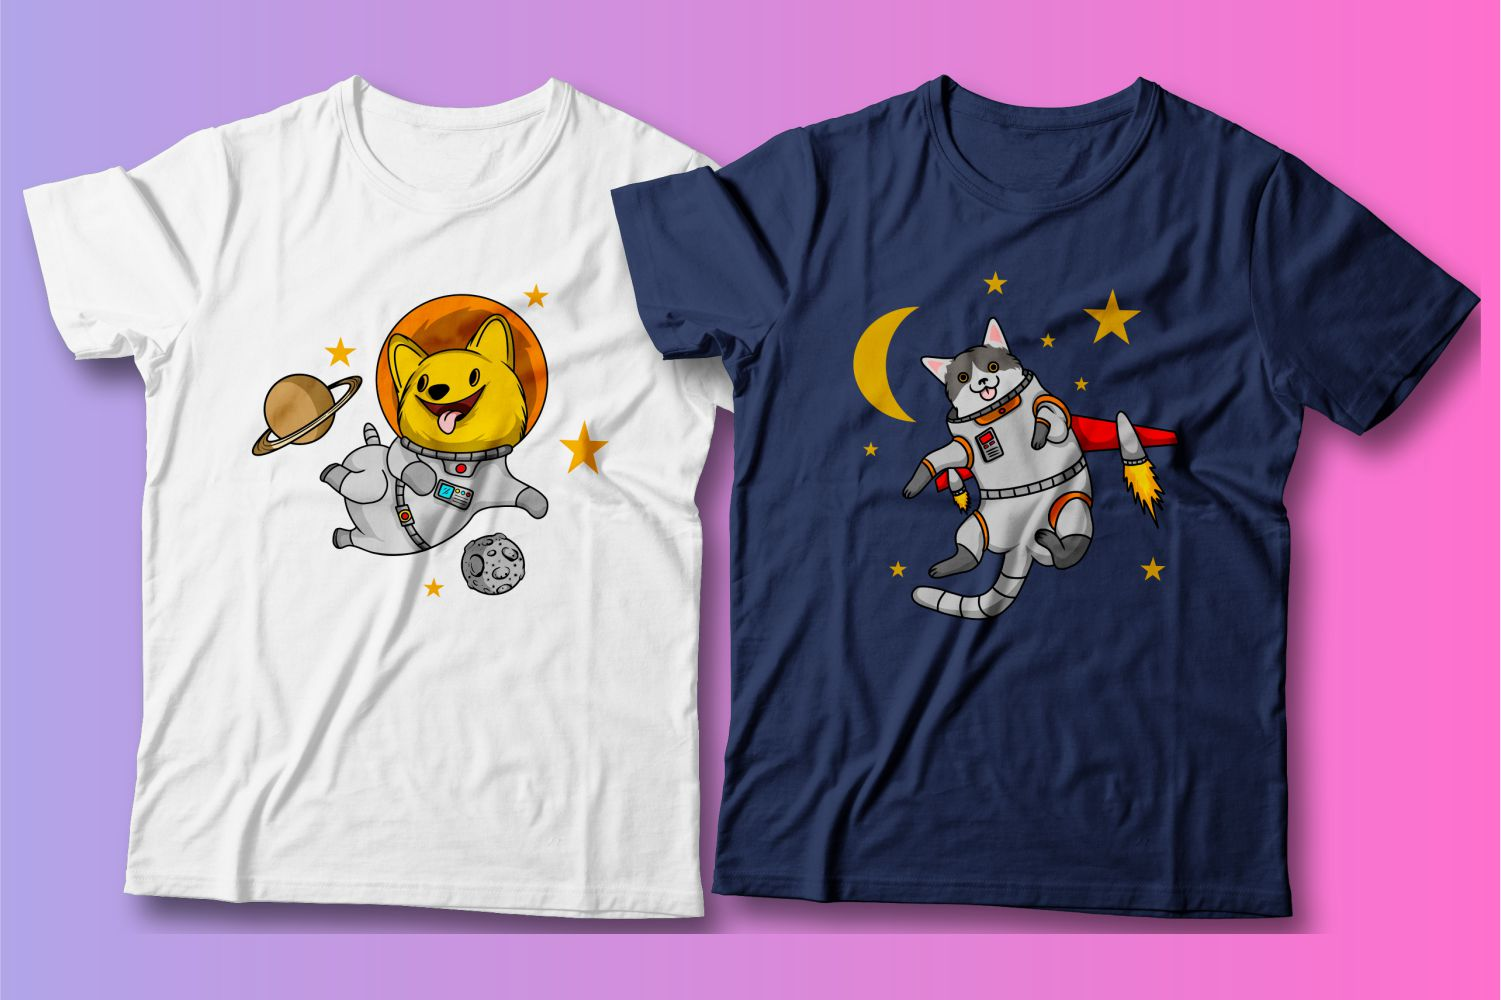 The happy faces of these pets in astronaut costumes attract all passers-by.